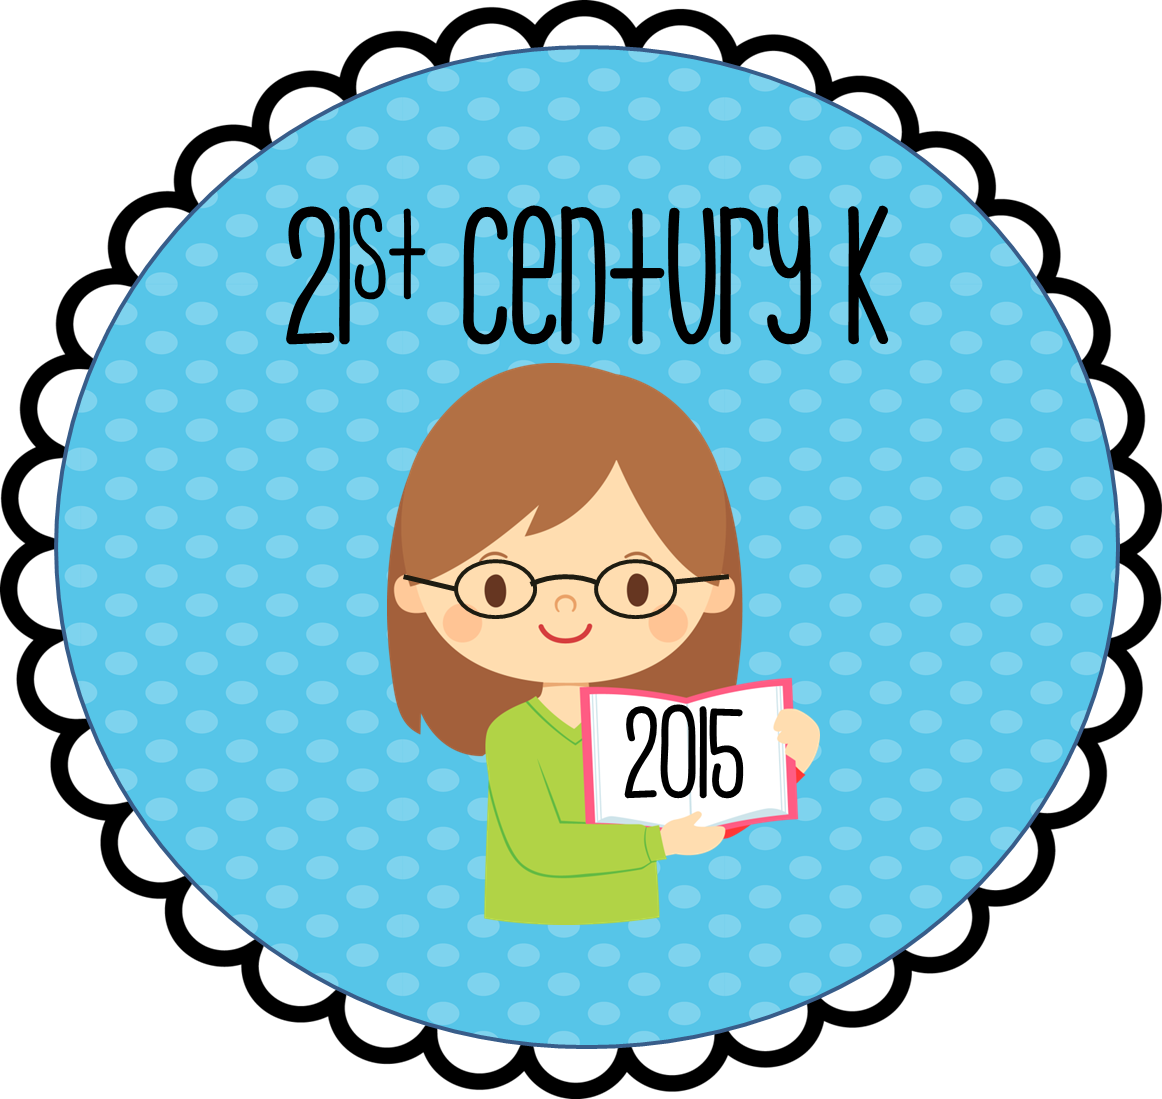 https://www.teacherspayteachers.com/Store/21st-Century-K